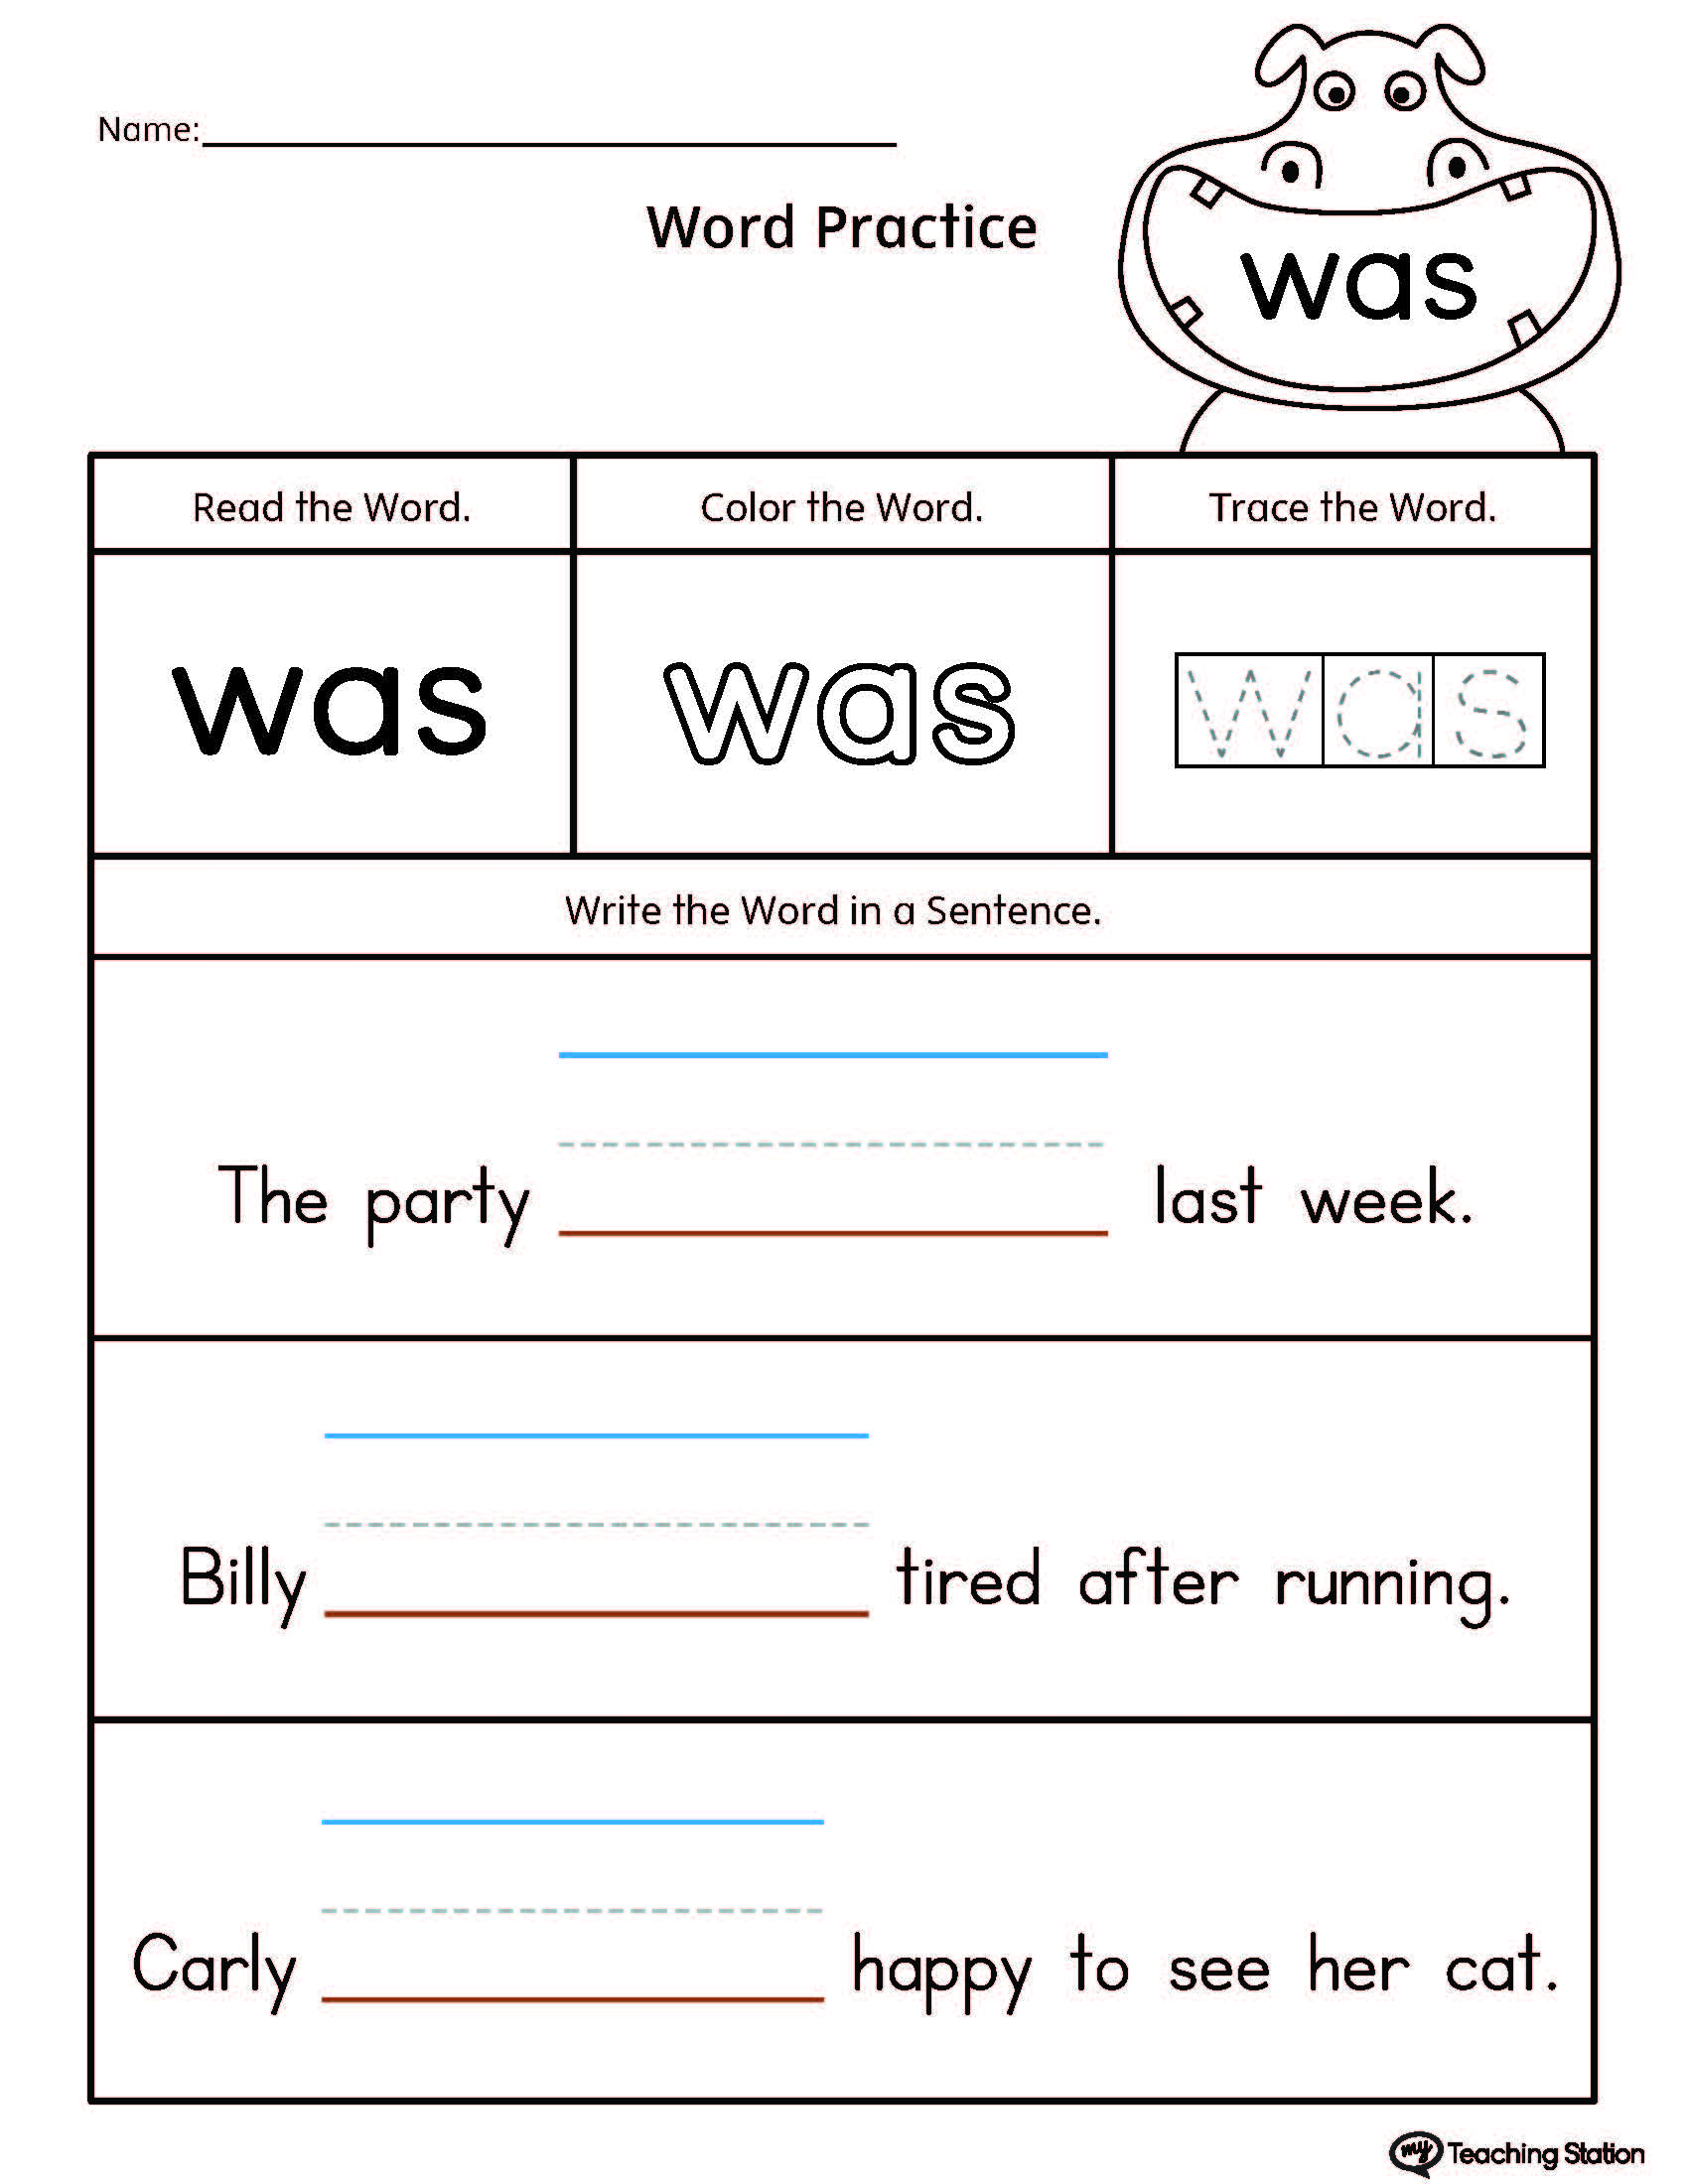 worksheet High Frequency Words Worksheets high frequency words printable worksheets myteachingstation com build sentences using sight word was